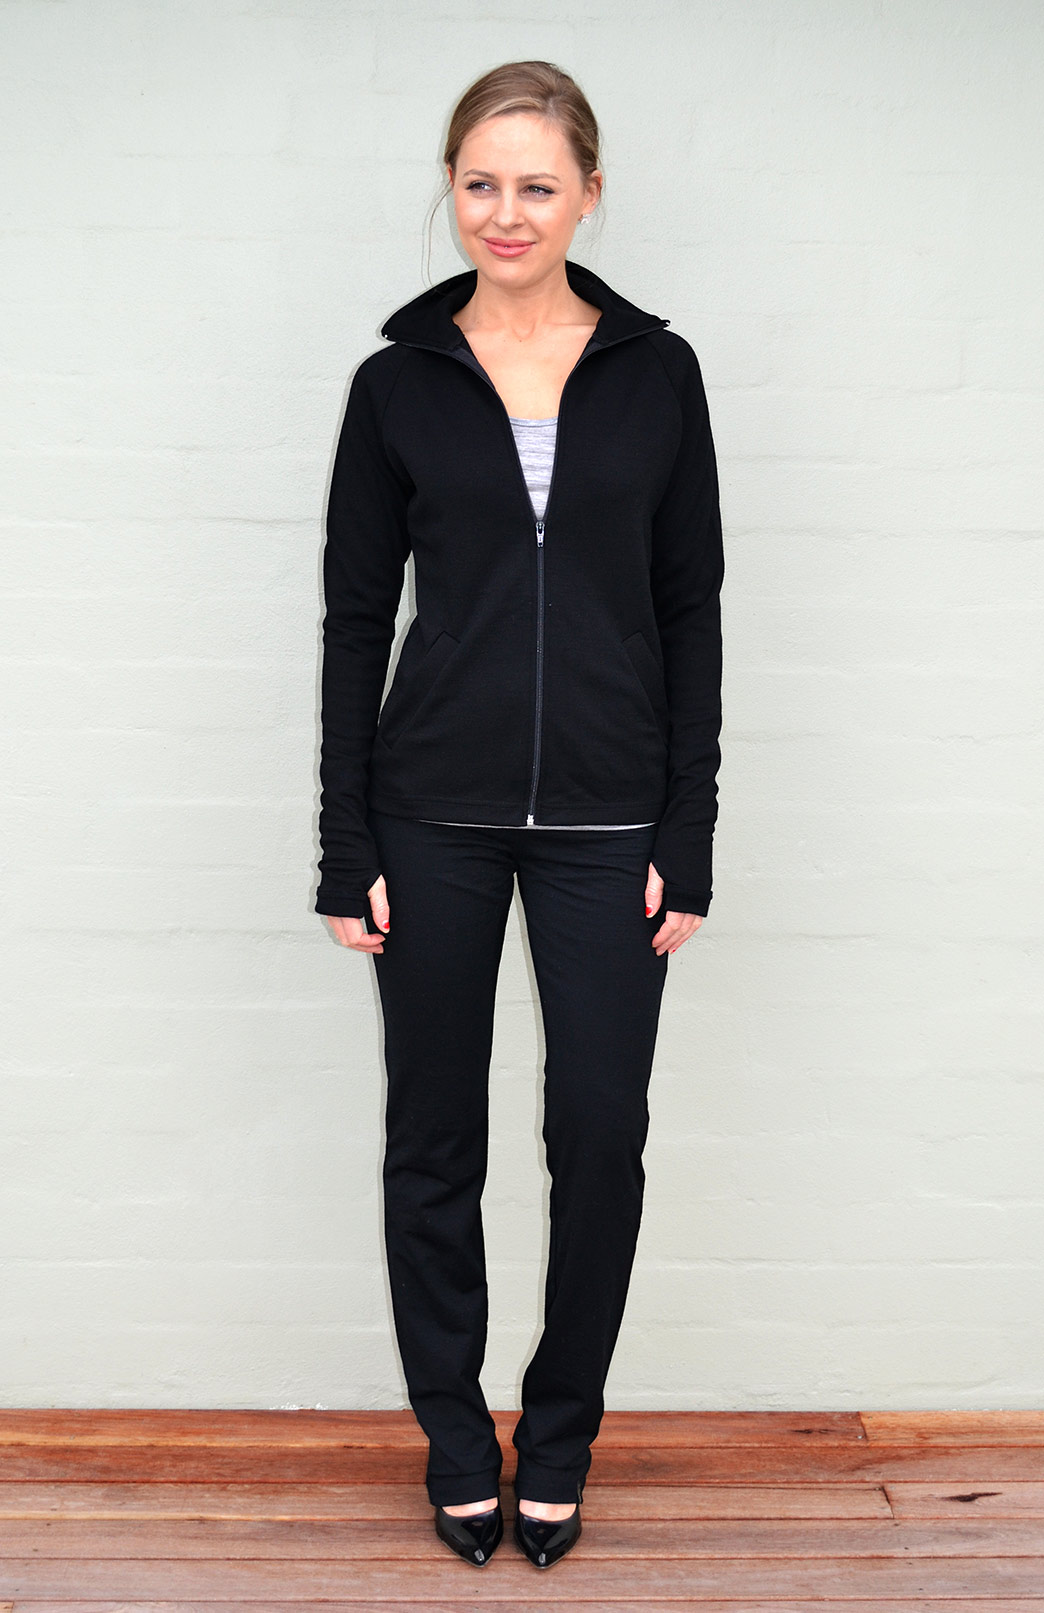 Zip Jacket - Heavyweight (360g) - Women's Merino Wool Black Zip Jacket with full zip and pockets - Smitten Merino Tasmania Australia